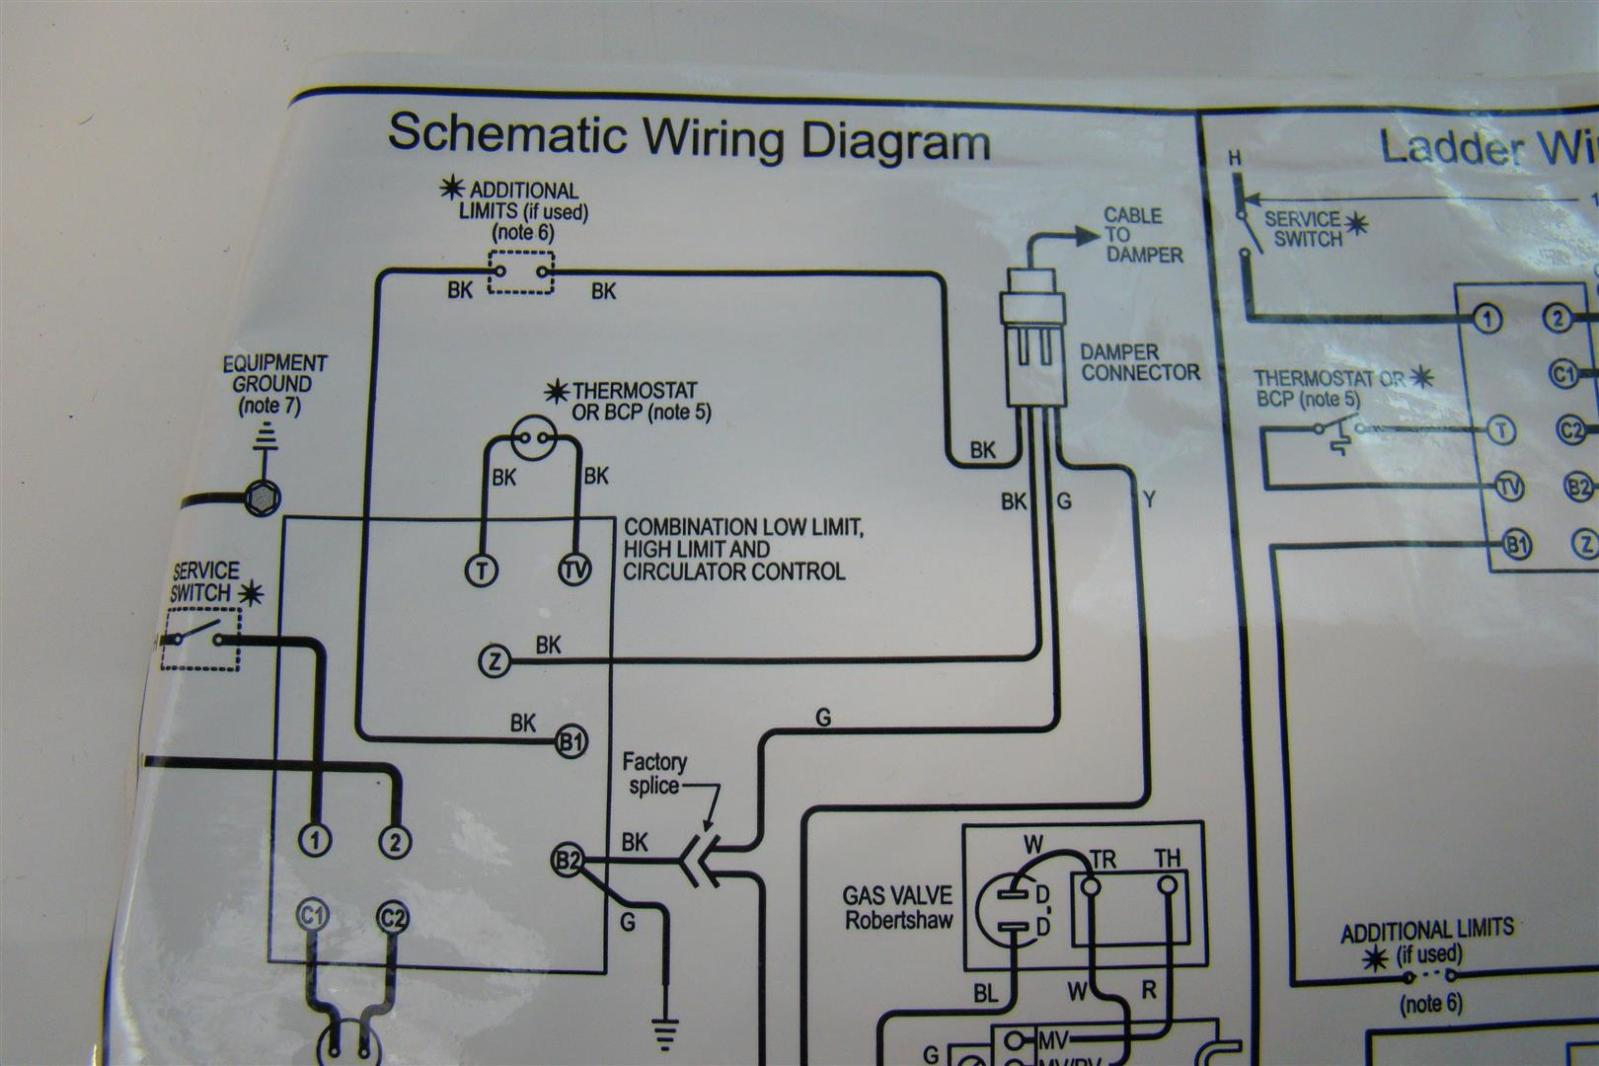 Industrial Gas Boiler Wiring Diagram | Wiring Liry on water tank wiring diagram, service wiring diagram, hot water boiler operation, hot water boiler exhaust, hot water boiler piping schematic, hot water boiler thermostat, furnace wiring diagram, hot water heat piping diagrams, hot water furnace diagram, accessories wiring diagram, water boiler piping diagram, hot water heater elements testing, boiler installation diagram, hot water boiler system, hot water coil piping diagram, hot water circulation heating system, hot water heater thermostat wiring, hot water boiler expansion tank, hot water heater element wiring, hydronic boiler diagram,